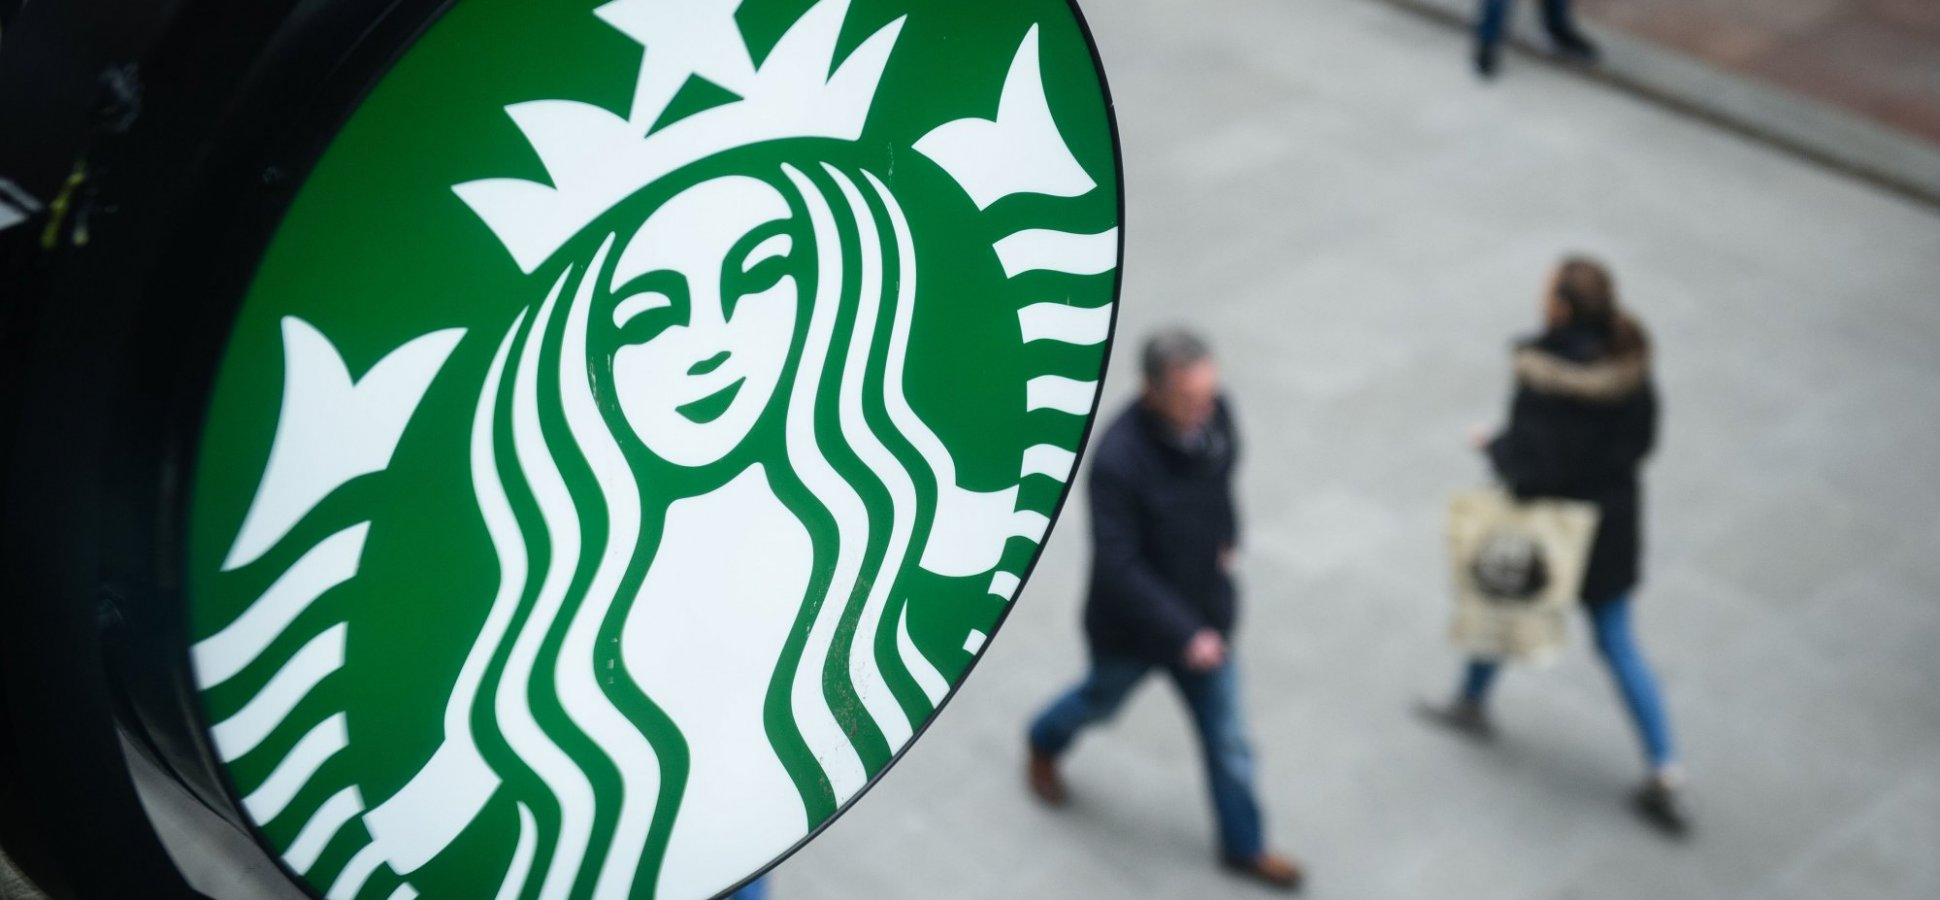 Starbucks Announces That Anyone Can Use Its Bathrooms. Here's Why They Should Have Kept It a Secret